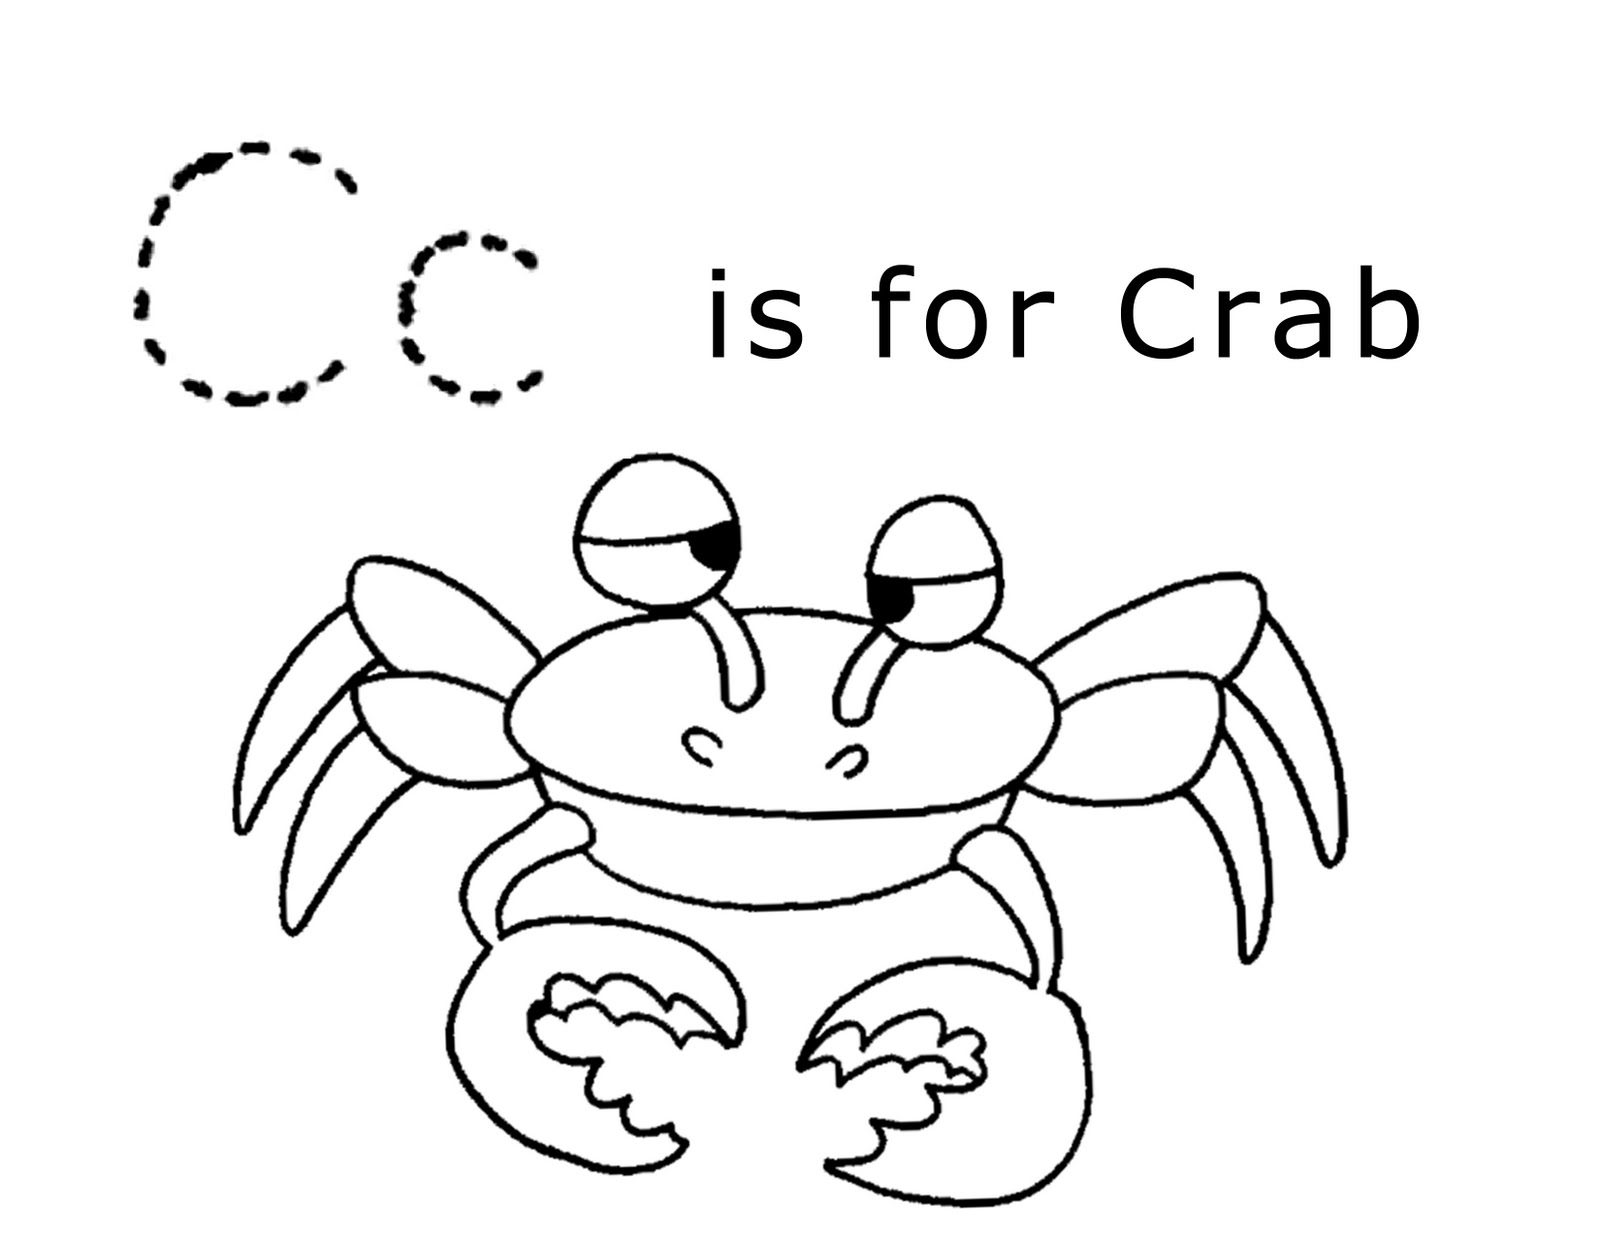 coloring preschool letter c worksheets 28 letter c worksheets for young learners kittybabylovecom letter c coloring worksheets preschool